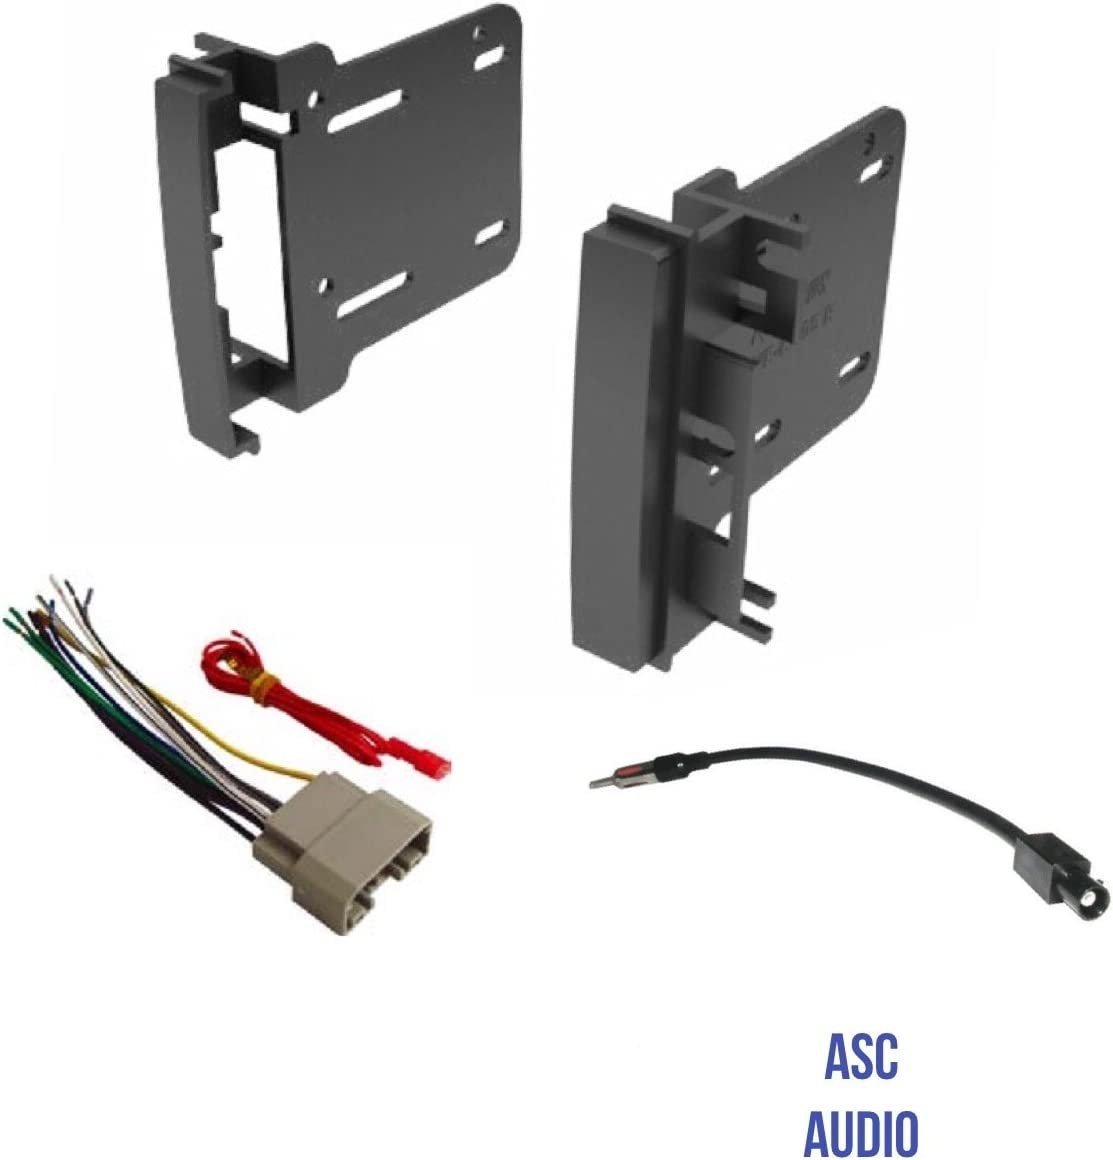 Vehicles listed below Other Wire Harness ASC Audio Car Stereo Radio Install Dash Kit and Antenna Adapter to Add a Double Din Radio for some 2007-2016 Chrysler Dodge Jeep